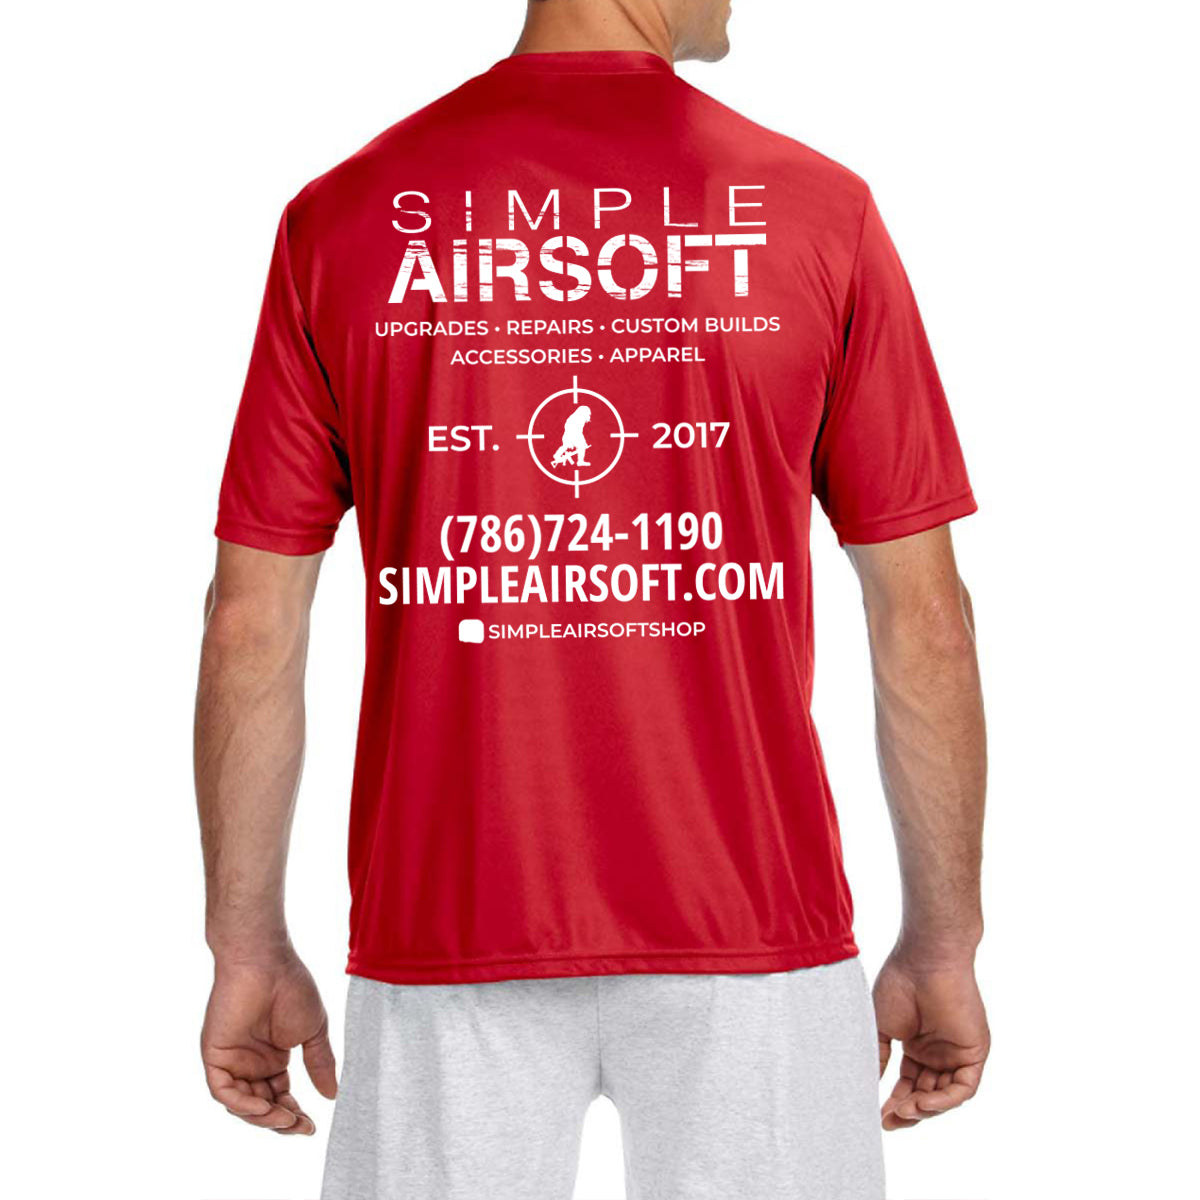 Simple Airsoft T-Shirt